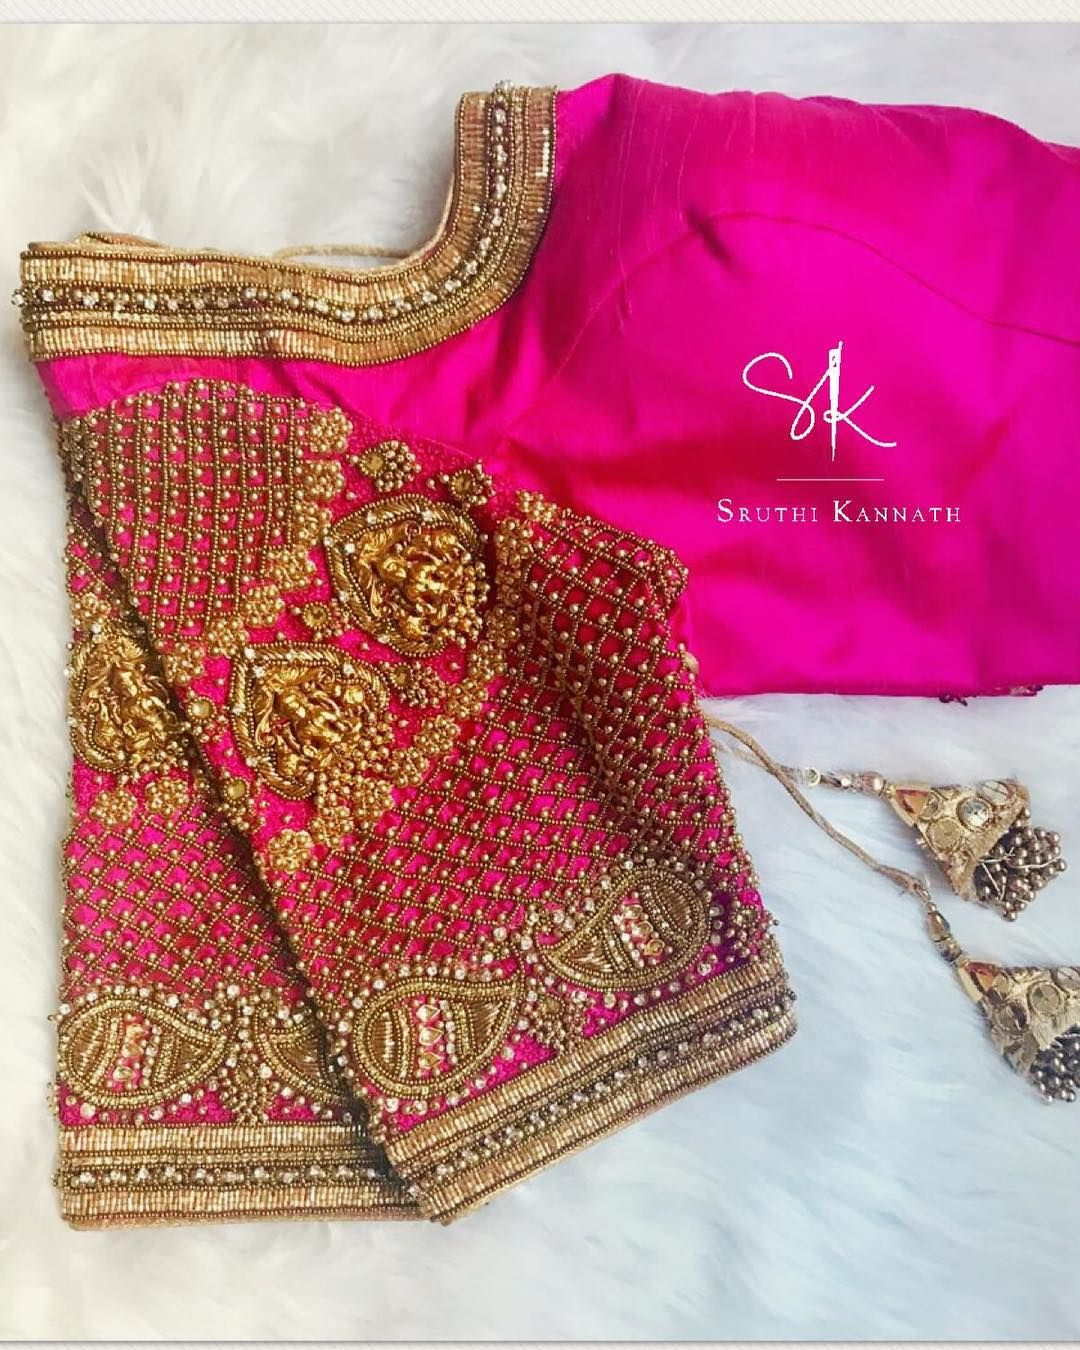 2f550f3cd8867 Stunning pink color bridal blouse with Lakshmi devi motifs on sleeves.  Blouse with hand embroidery zardosi and bead work. 02 October 2018